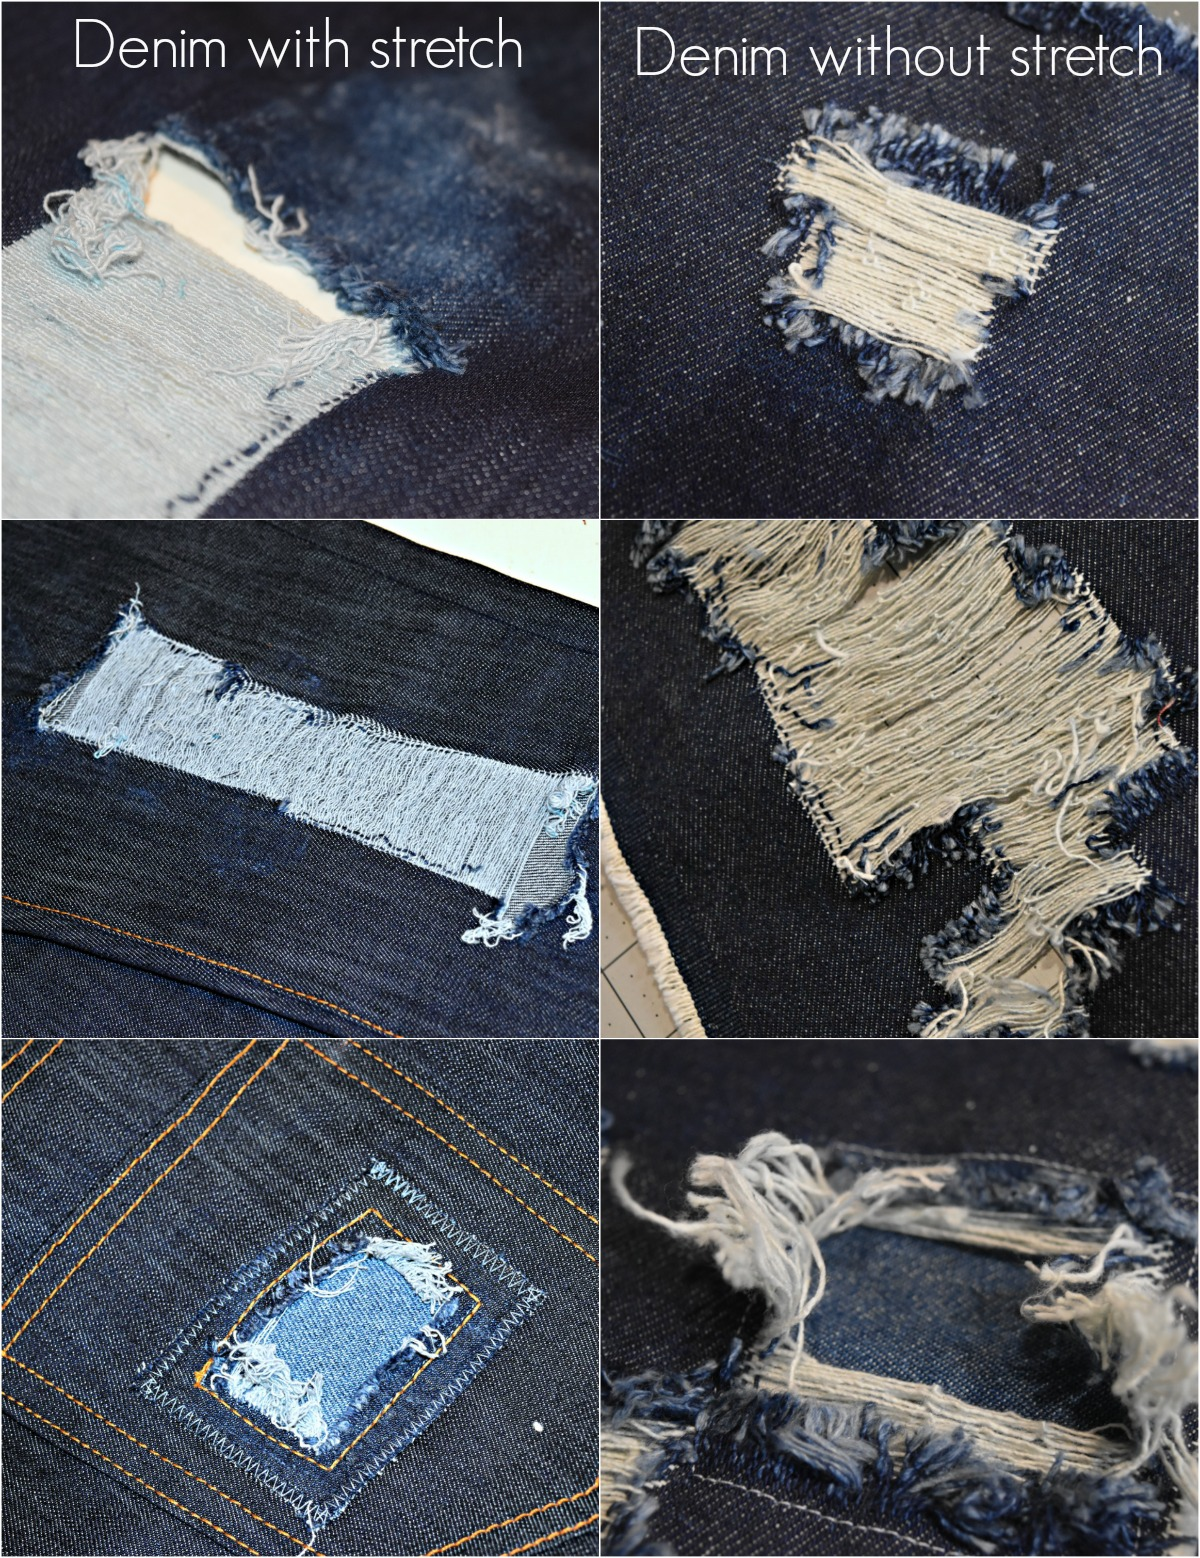 You will find plenty of denim skinnies, shorts, skirts, and jackets online, but this is the only place where you will find great items meant for women who really know how to wear denim. More We have an excellent collection of trendy womens high waisted jeans, ankle skinnies, and great tops to go with them.